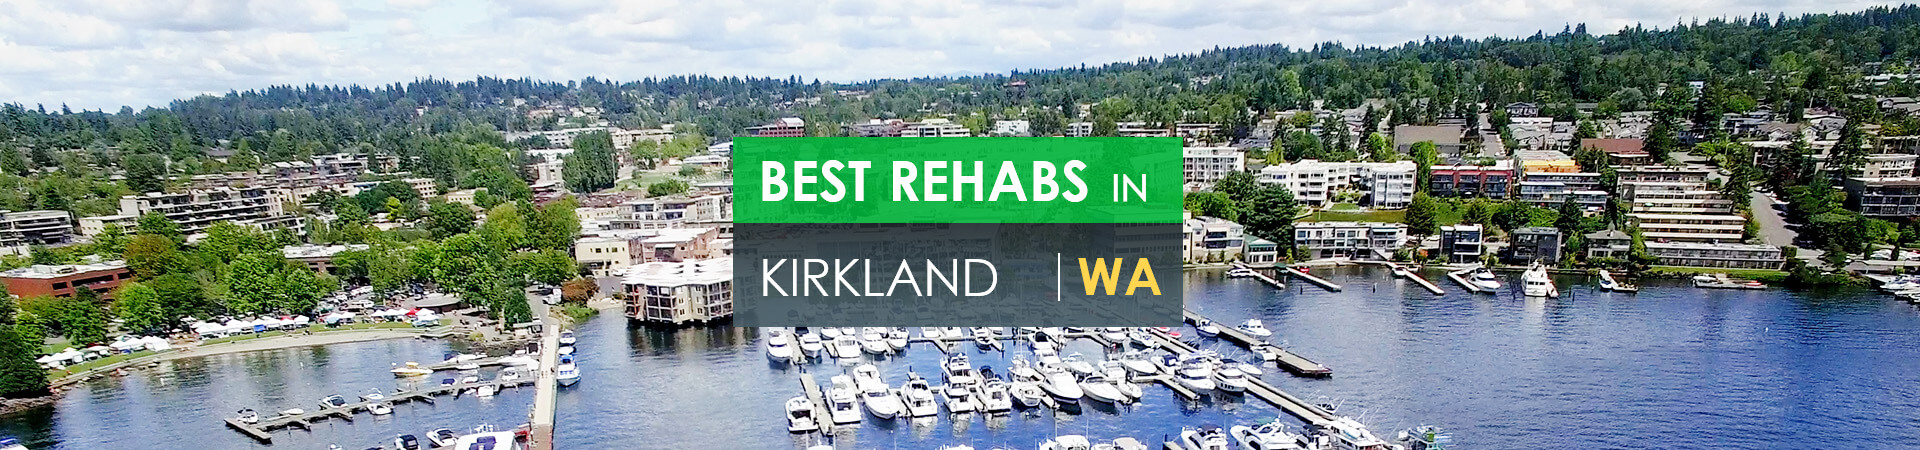 Best rehabs in Kirkland, WA